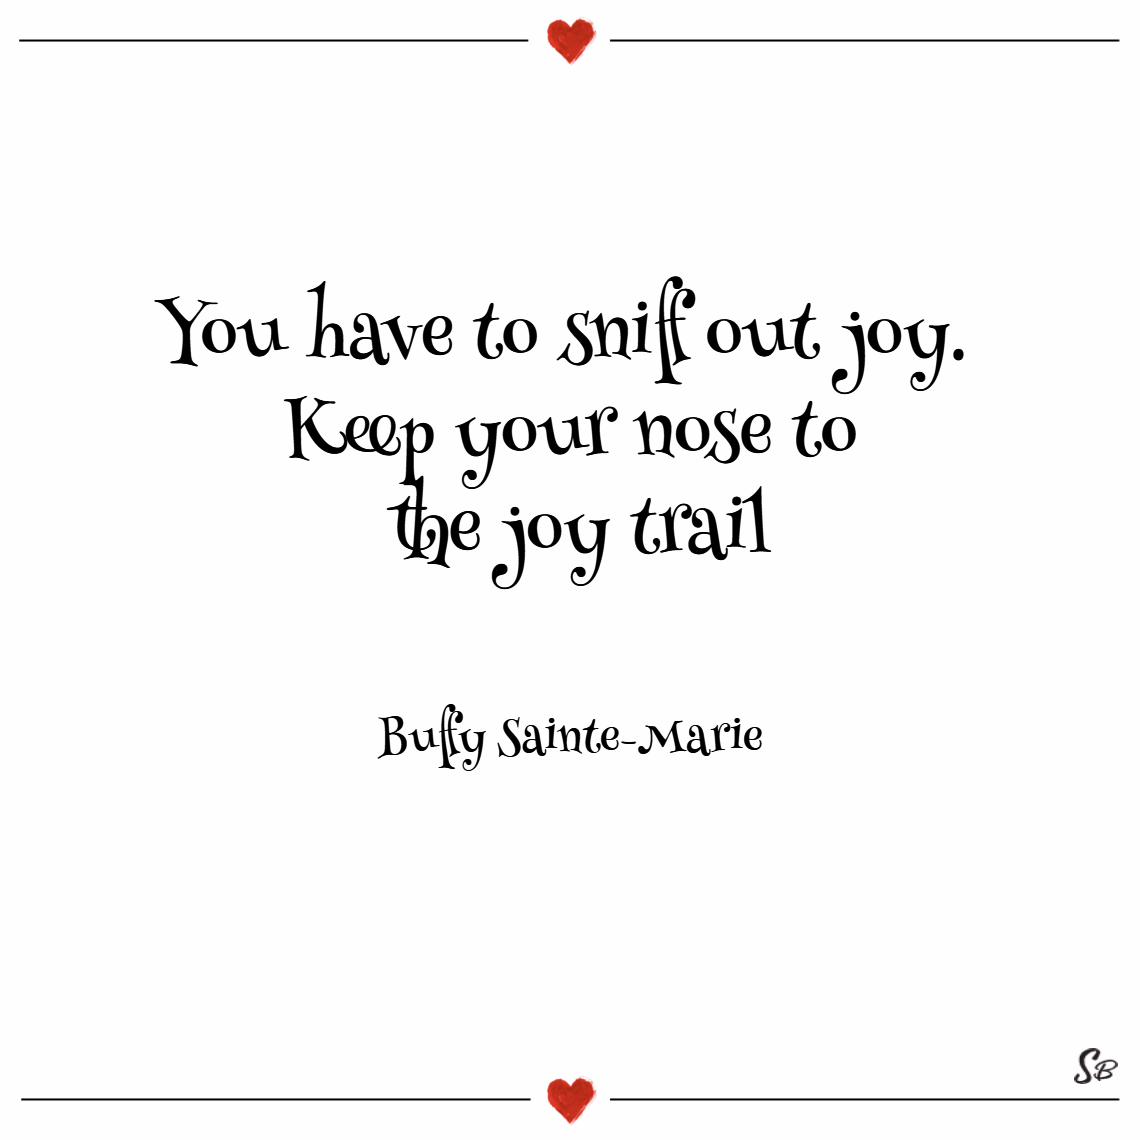 You have to sniff out joy. keep your nose to the joy trail. – buffy sainte marie